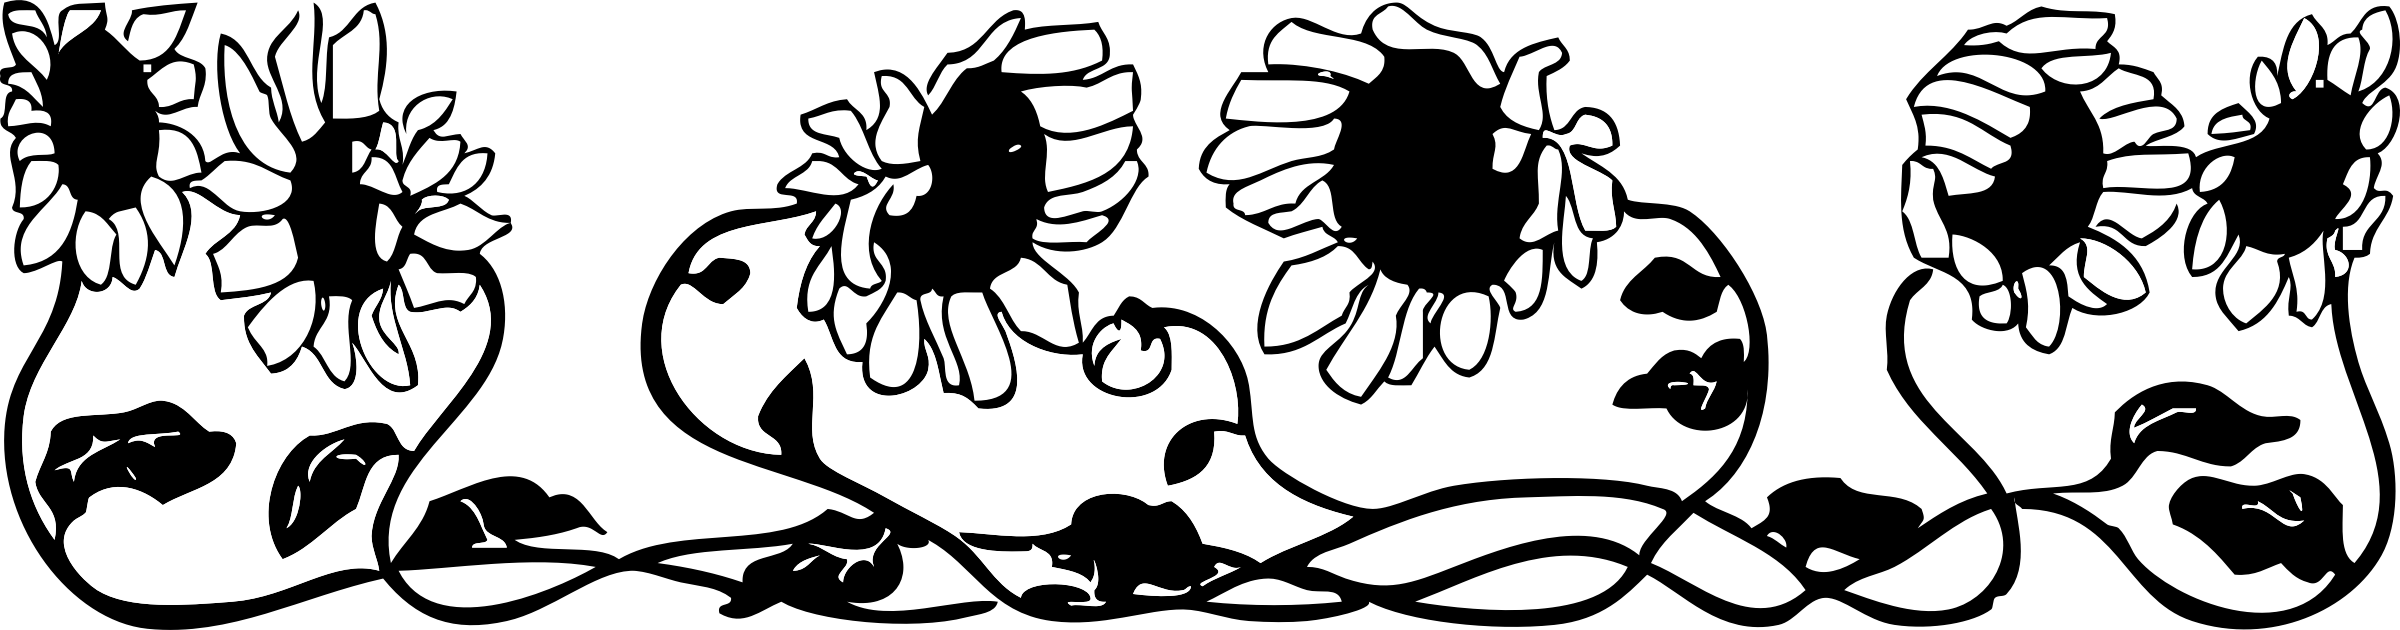 Clipart flower border black and white graphic stock sunflower border Icons PNG - Free PNG and Icons Downloads graphic stock